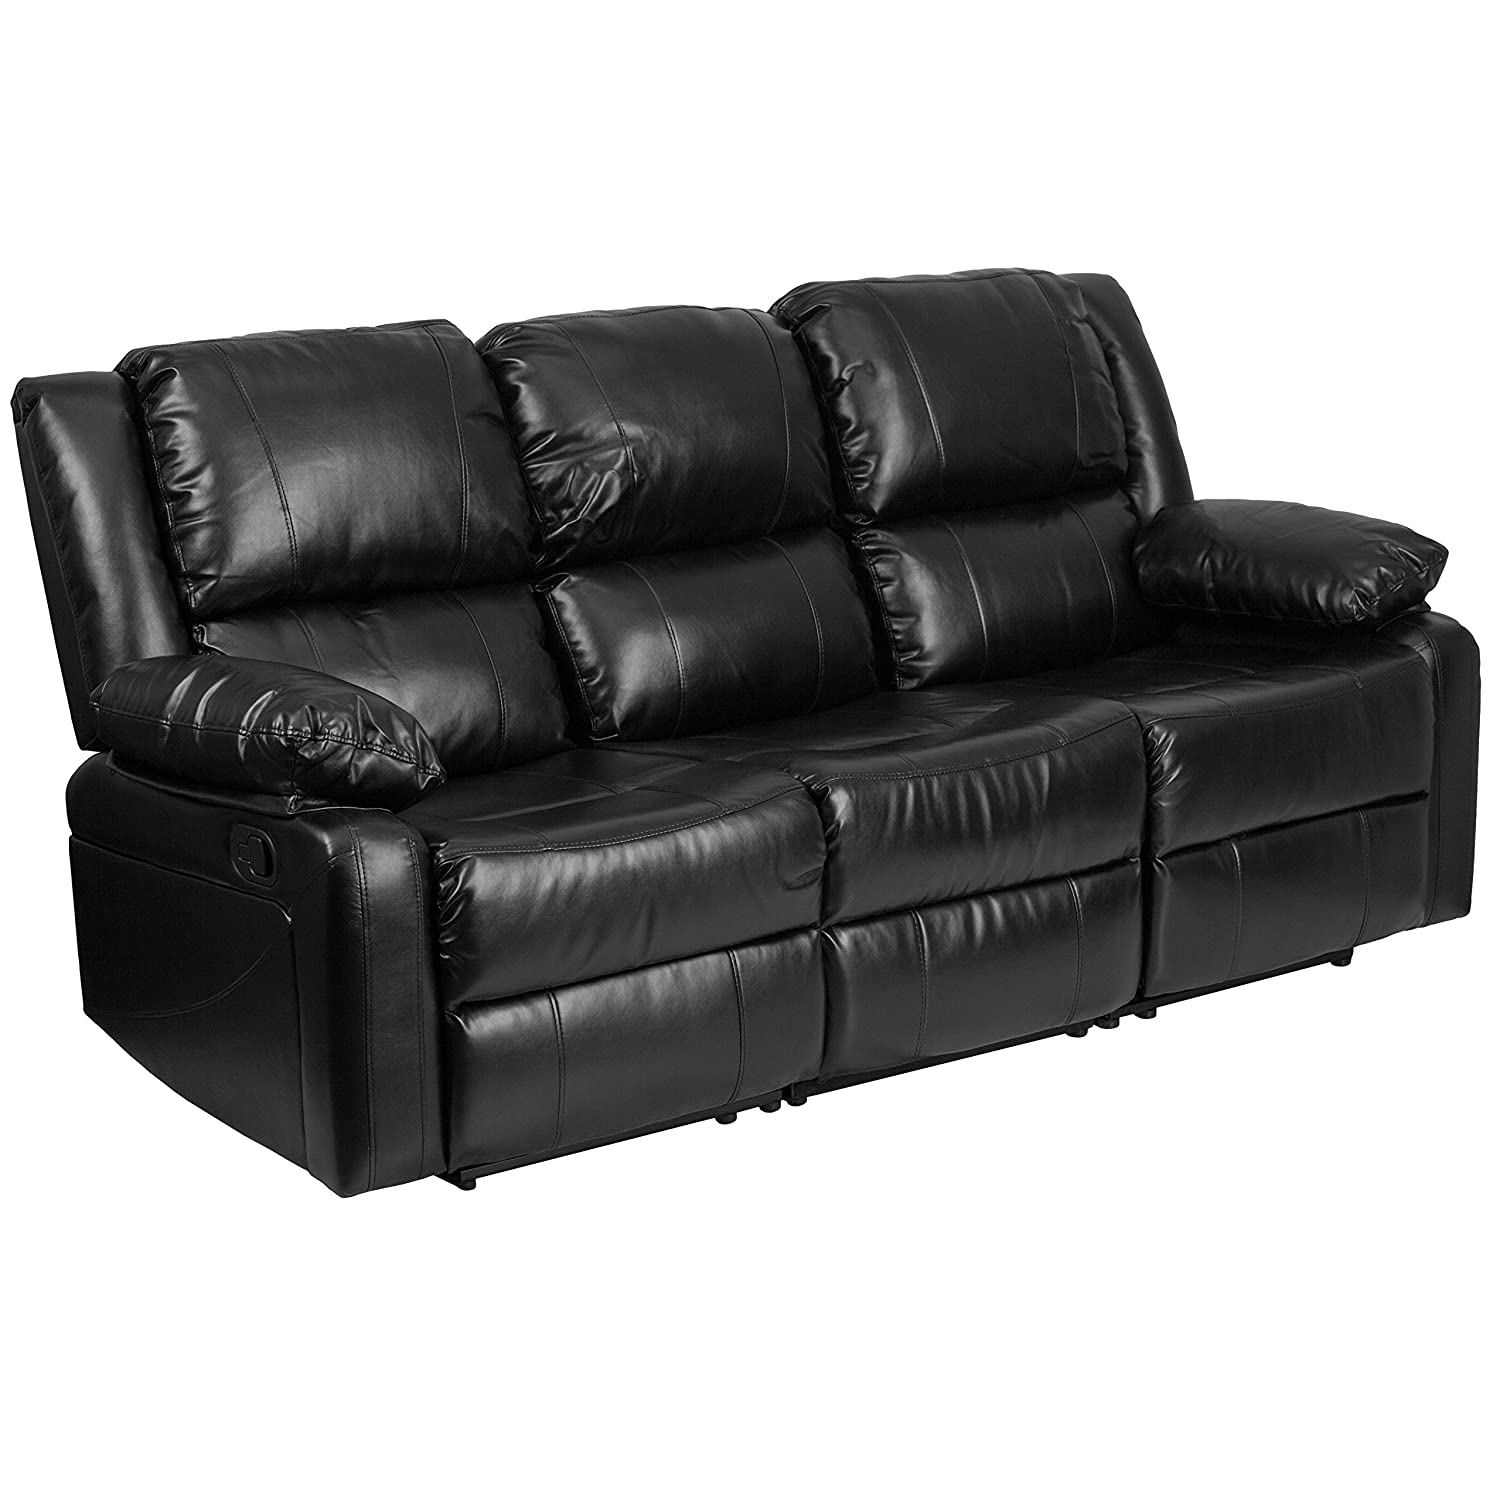 amazoncom flash furniture harmony series black leather sofa with twobuiltin recliners kitchen  dining. amazoncom flash furniture harmony series black leather sofa with